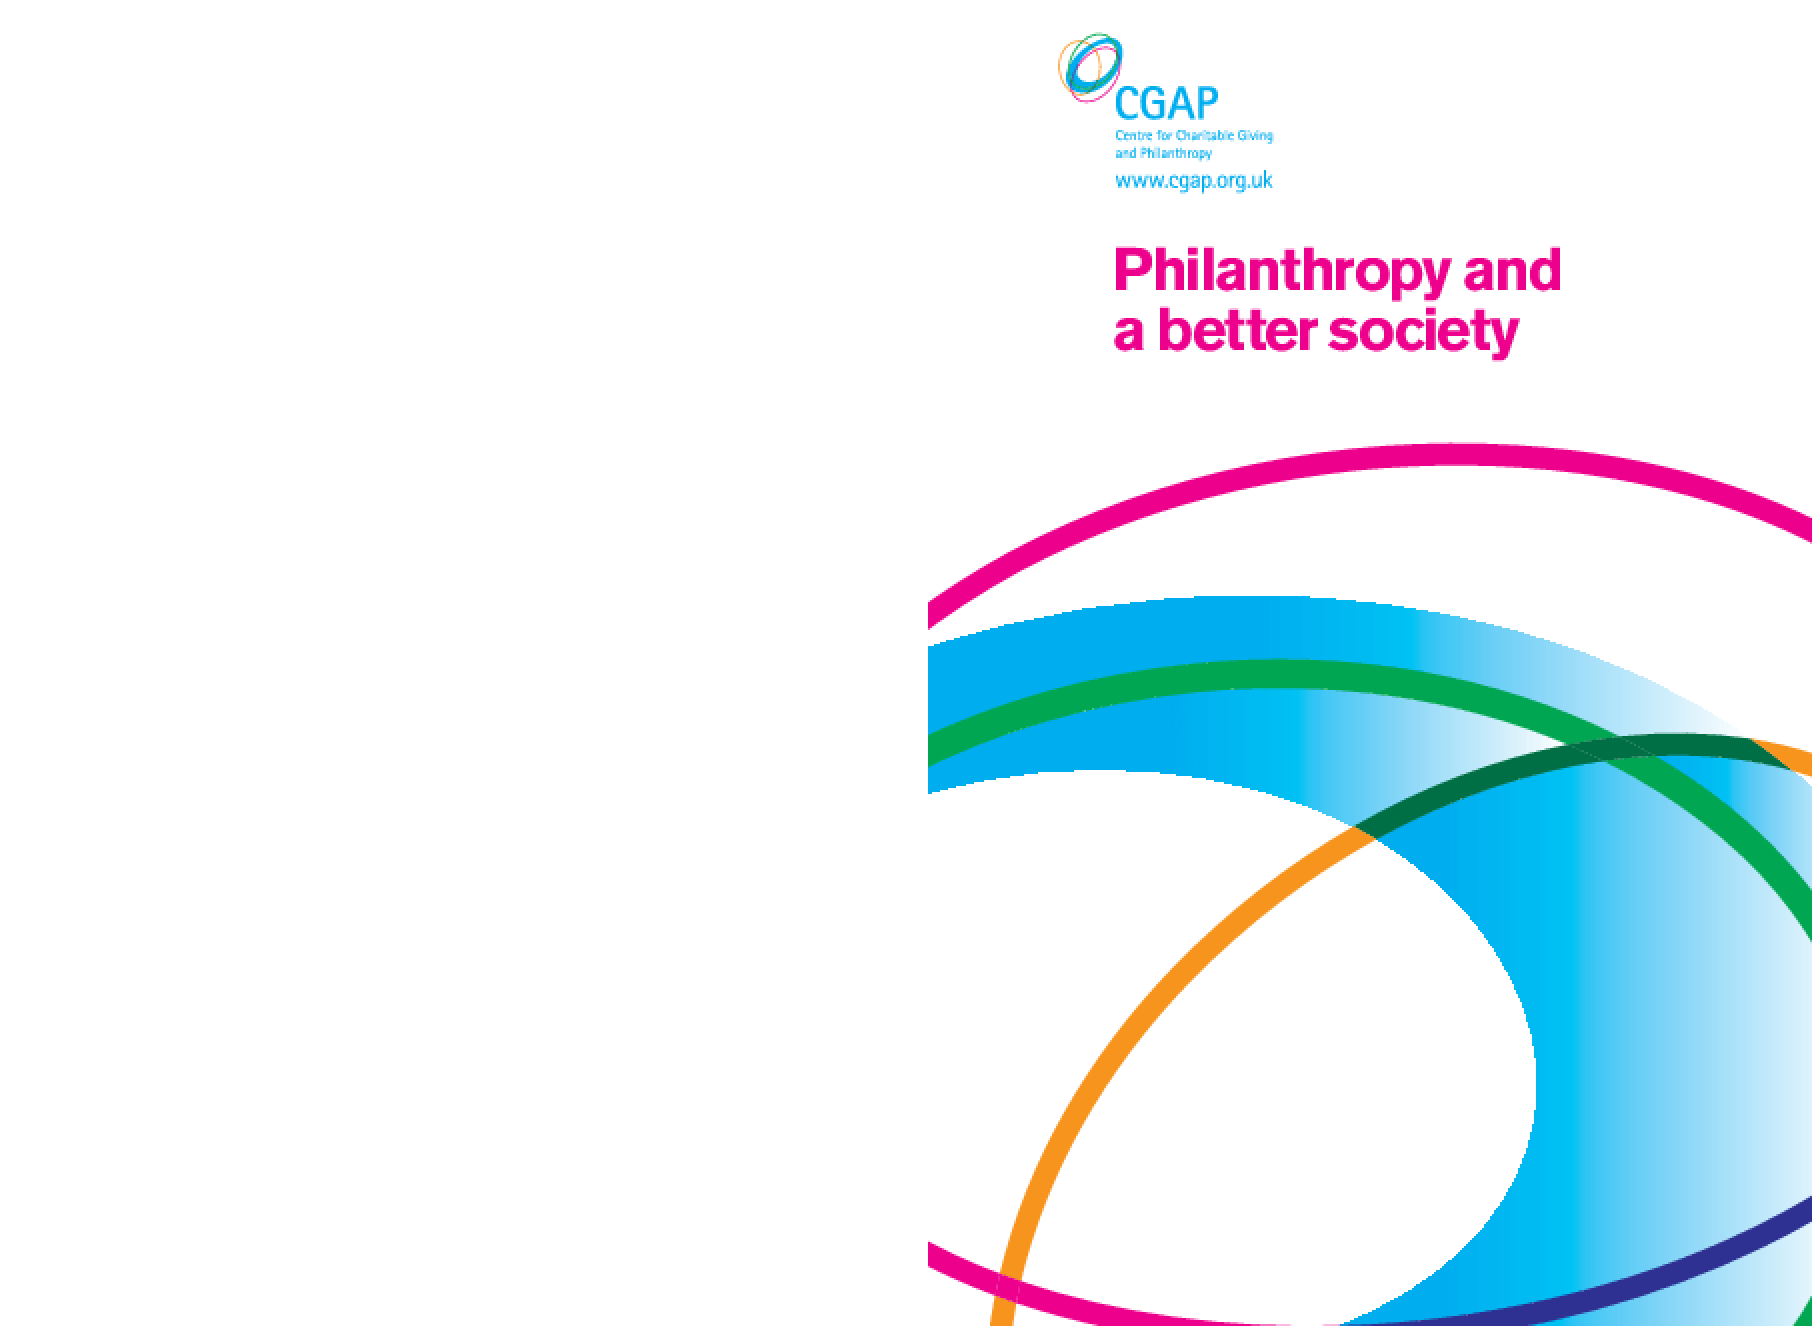 Philanthropy and a Better Society